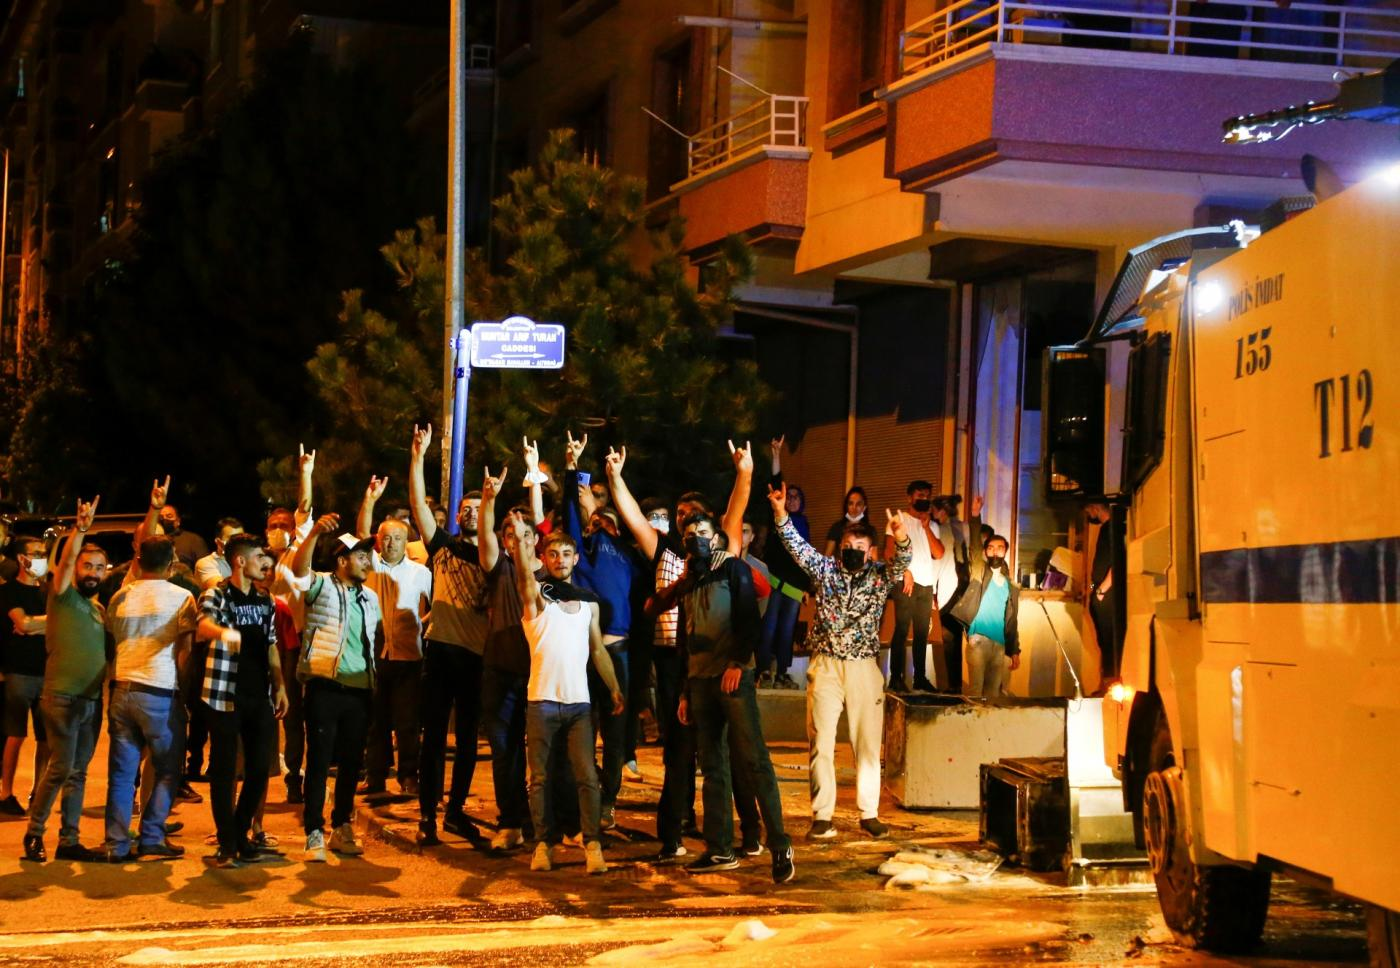 Death of a man allegedly at the hands of Syrians triggers riots in Ankara